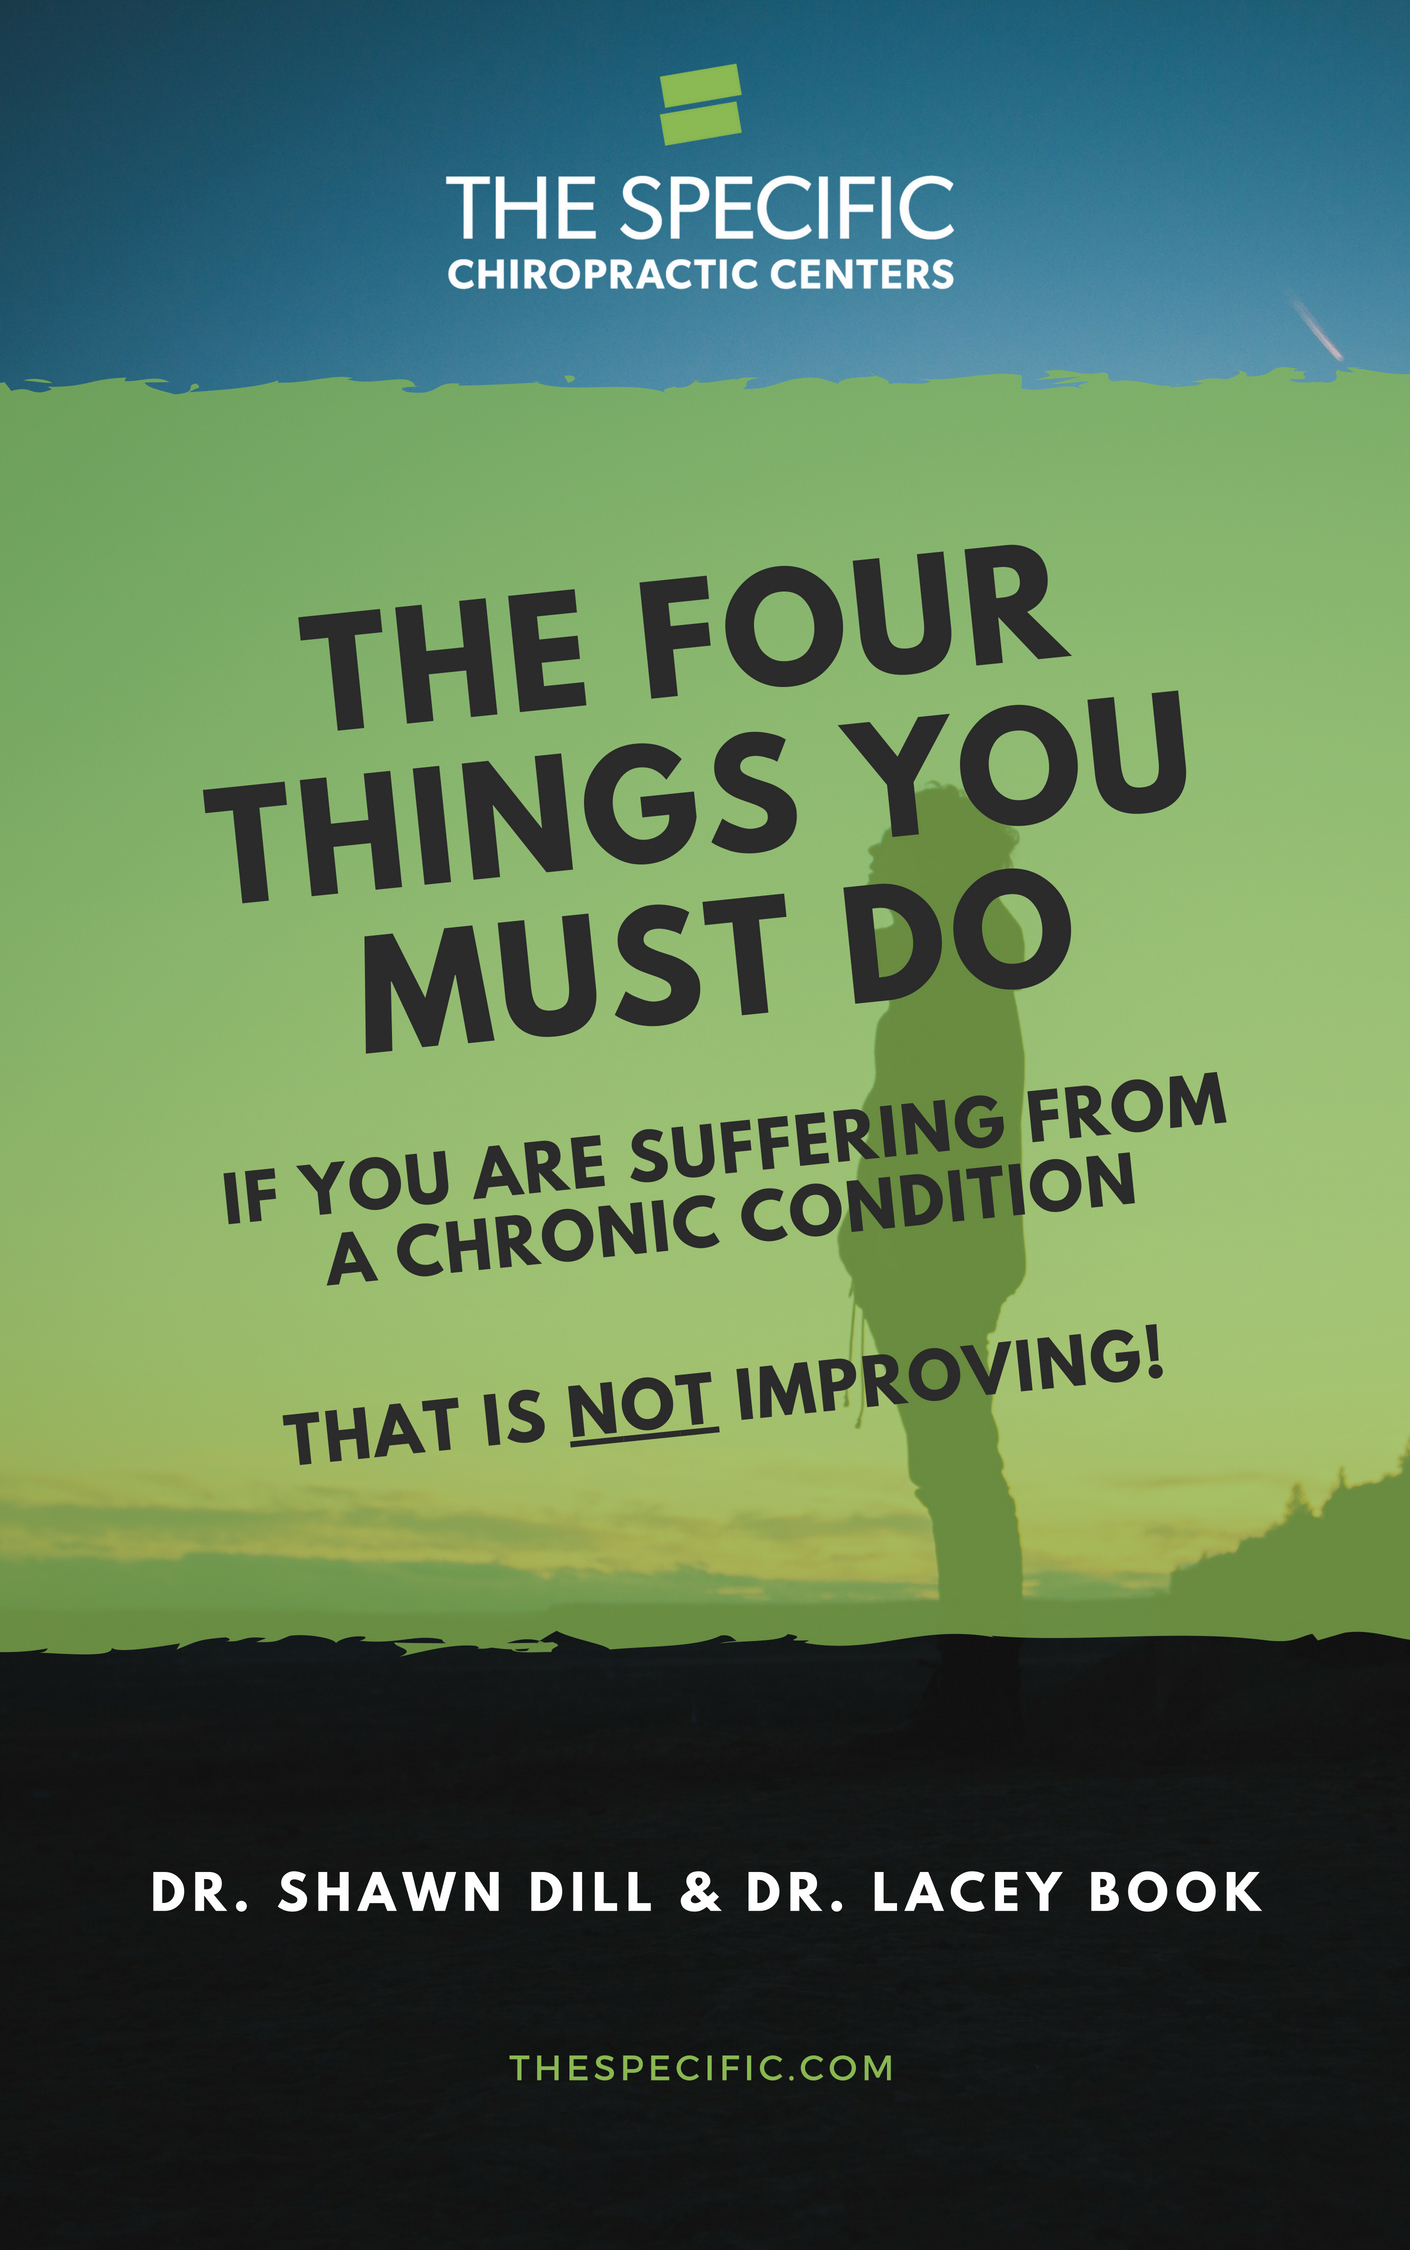 The Four Things that you must do when sufferin